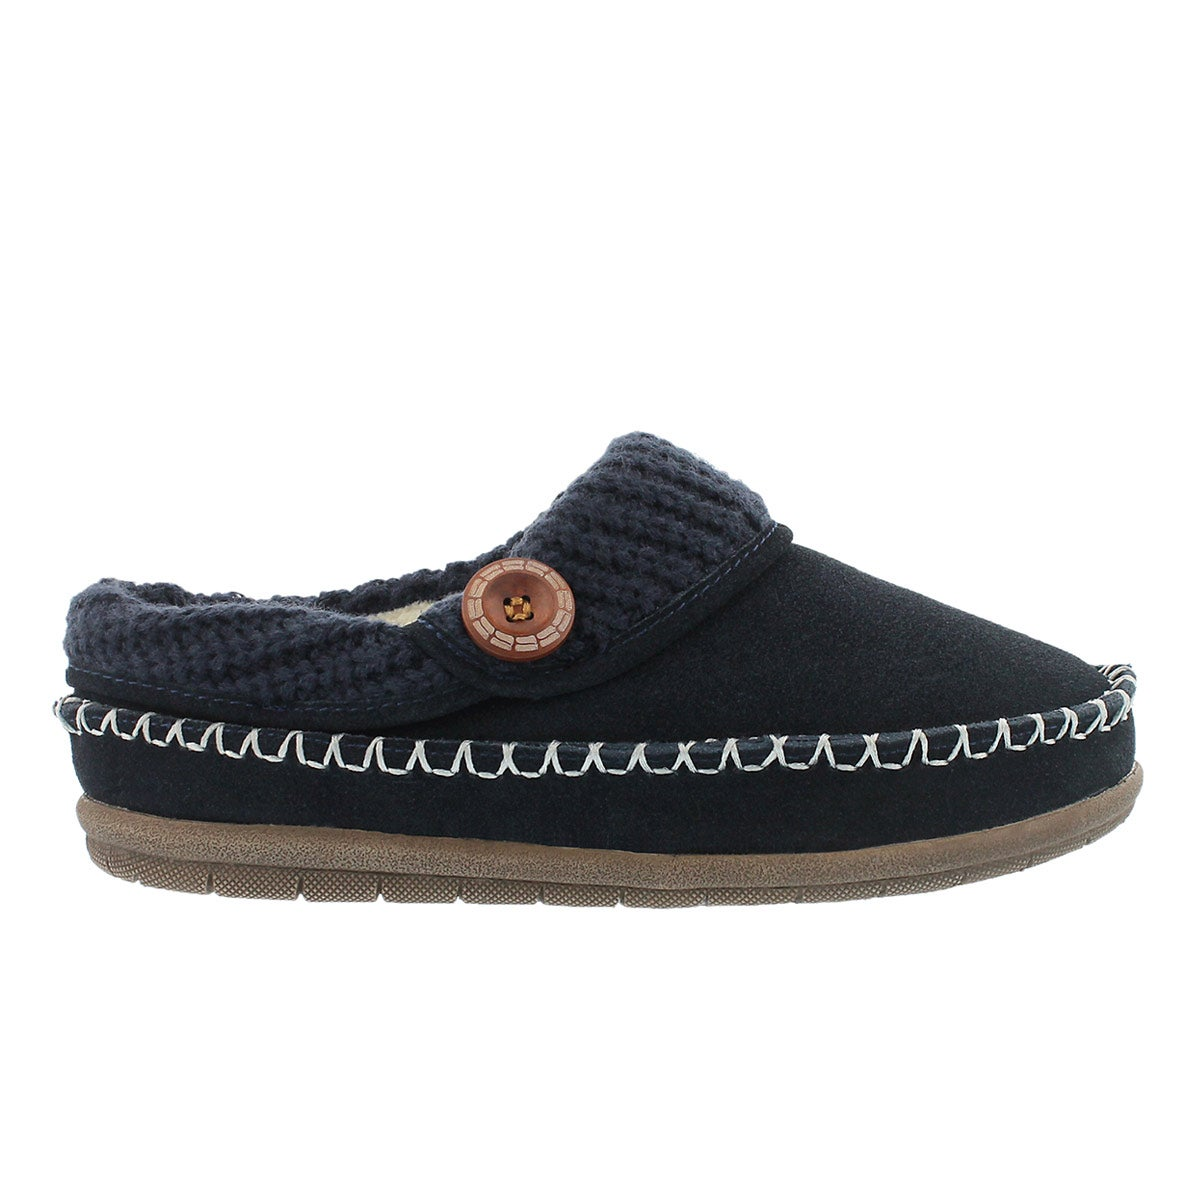 Lds Annalise navy open back slipper